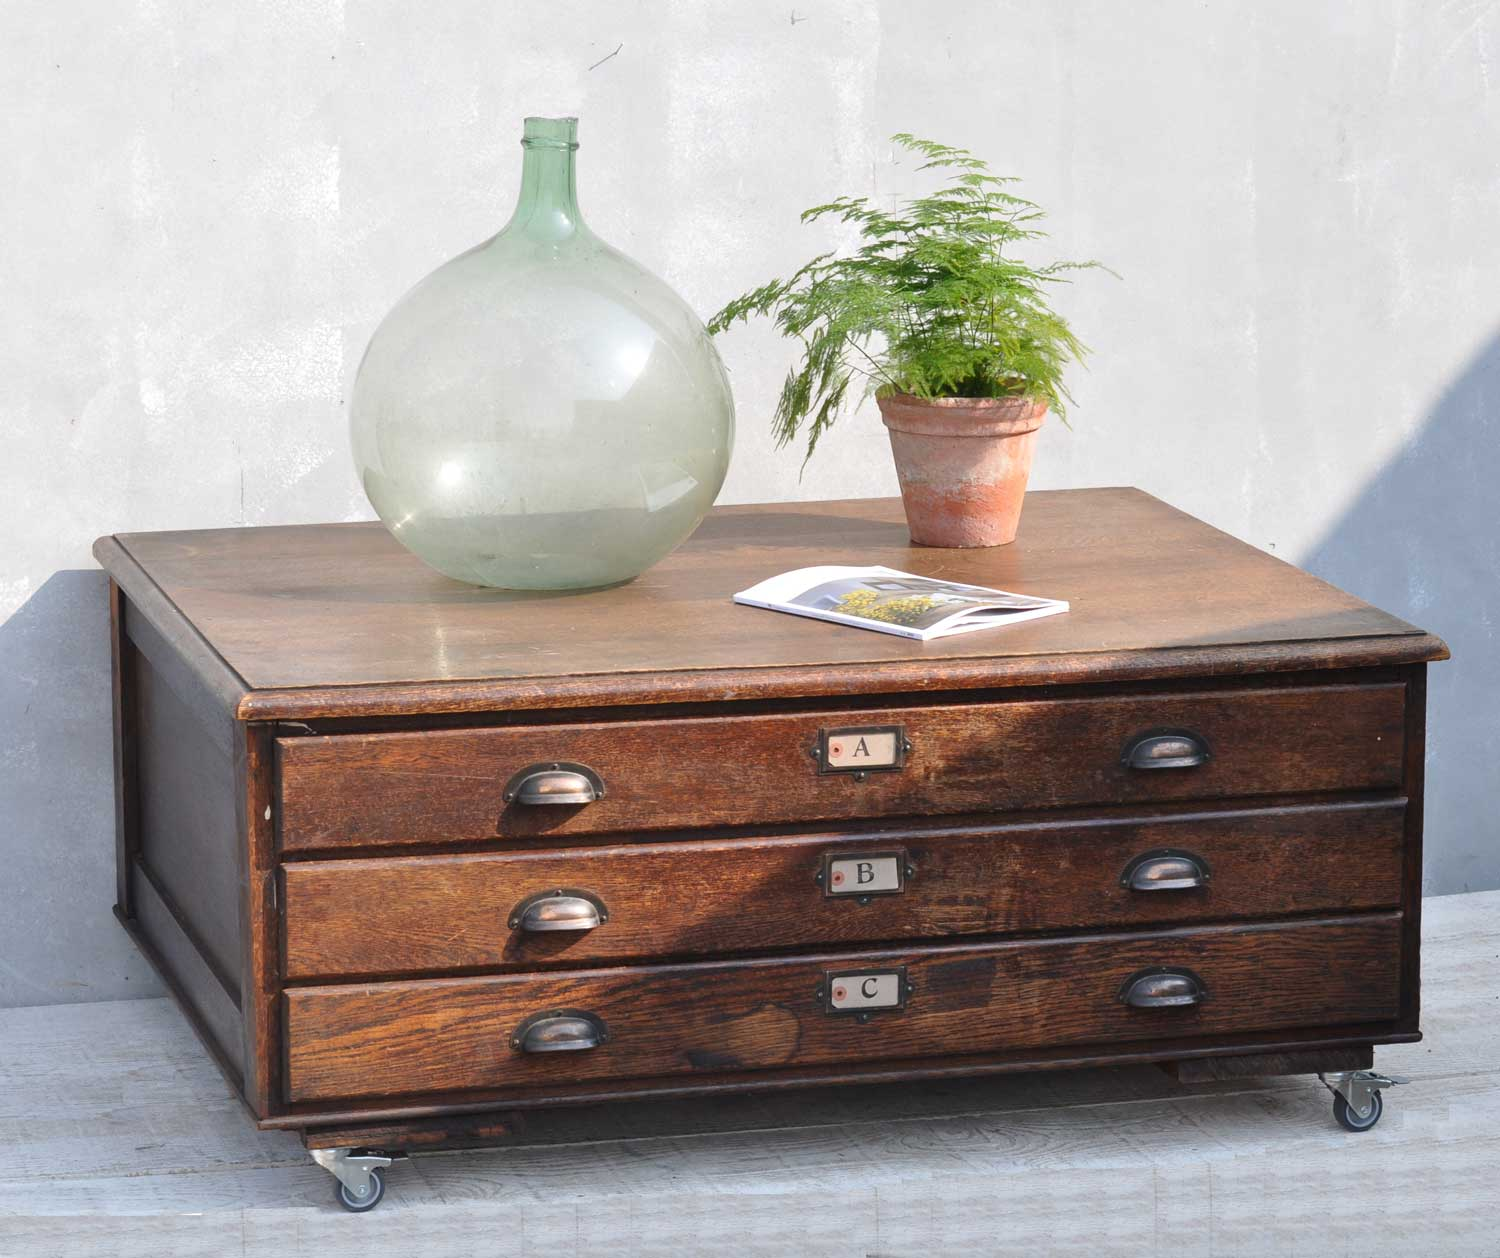 Vintage Oak Plan Chest Coffee Table On Wheels Home Barn Vintage